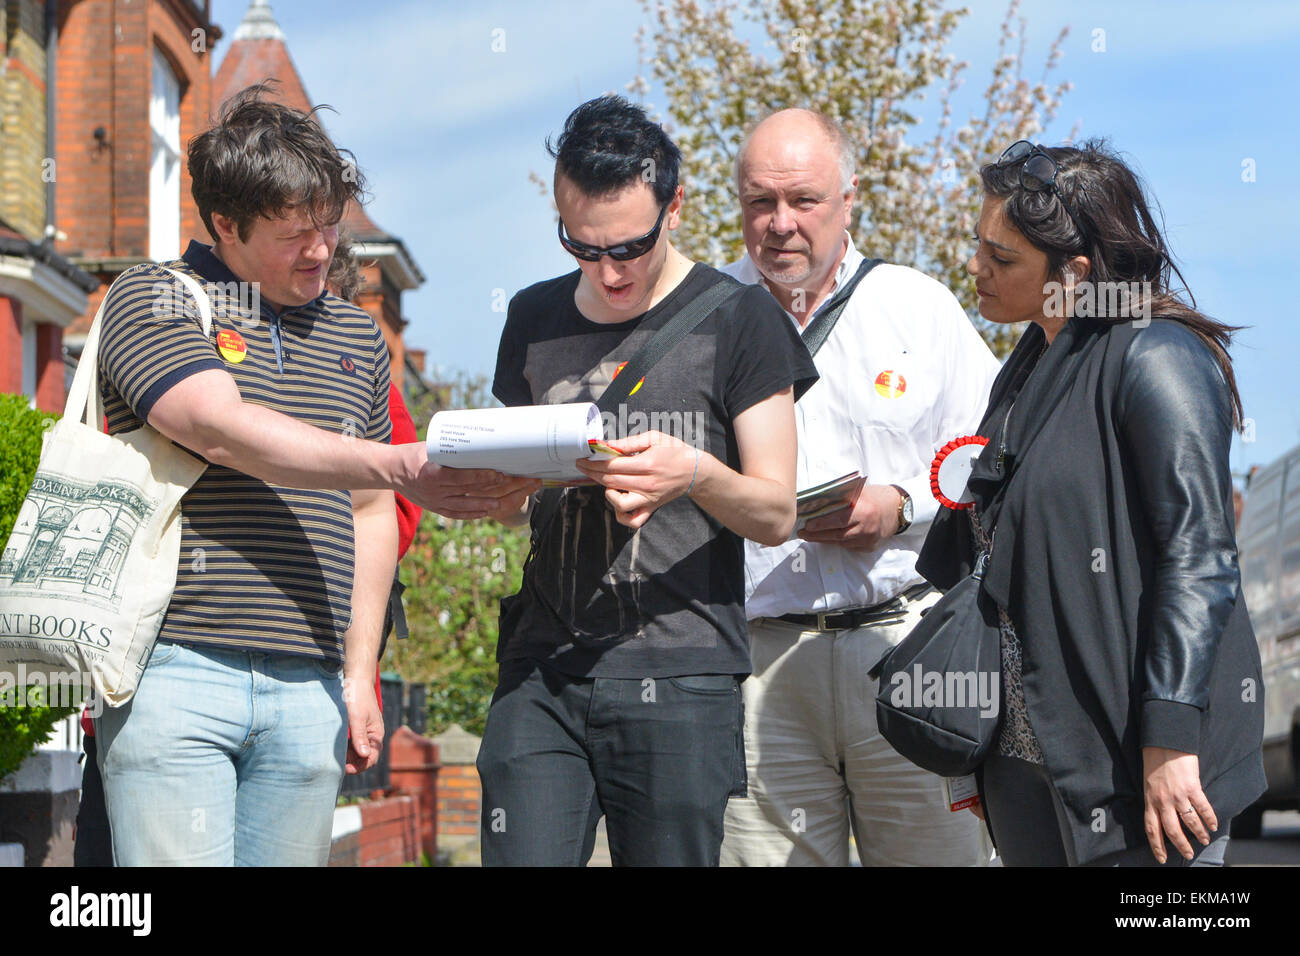 Wood Green, London, UK. 12th April 2015. Labour Party Councillors and activists out doorstepping in Wood Green, Stock Photo